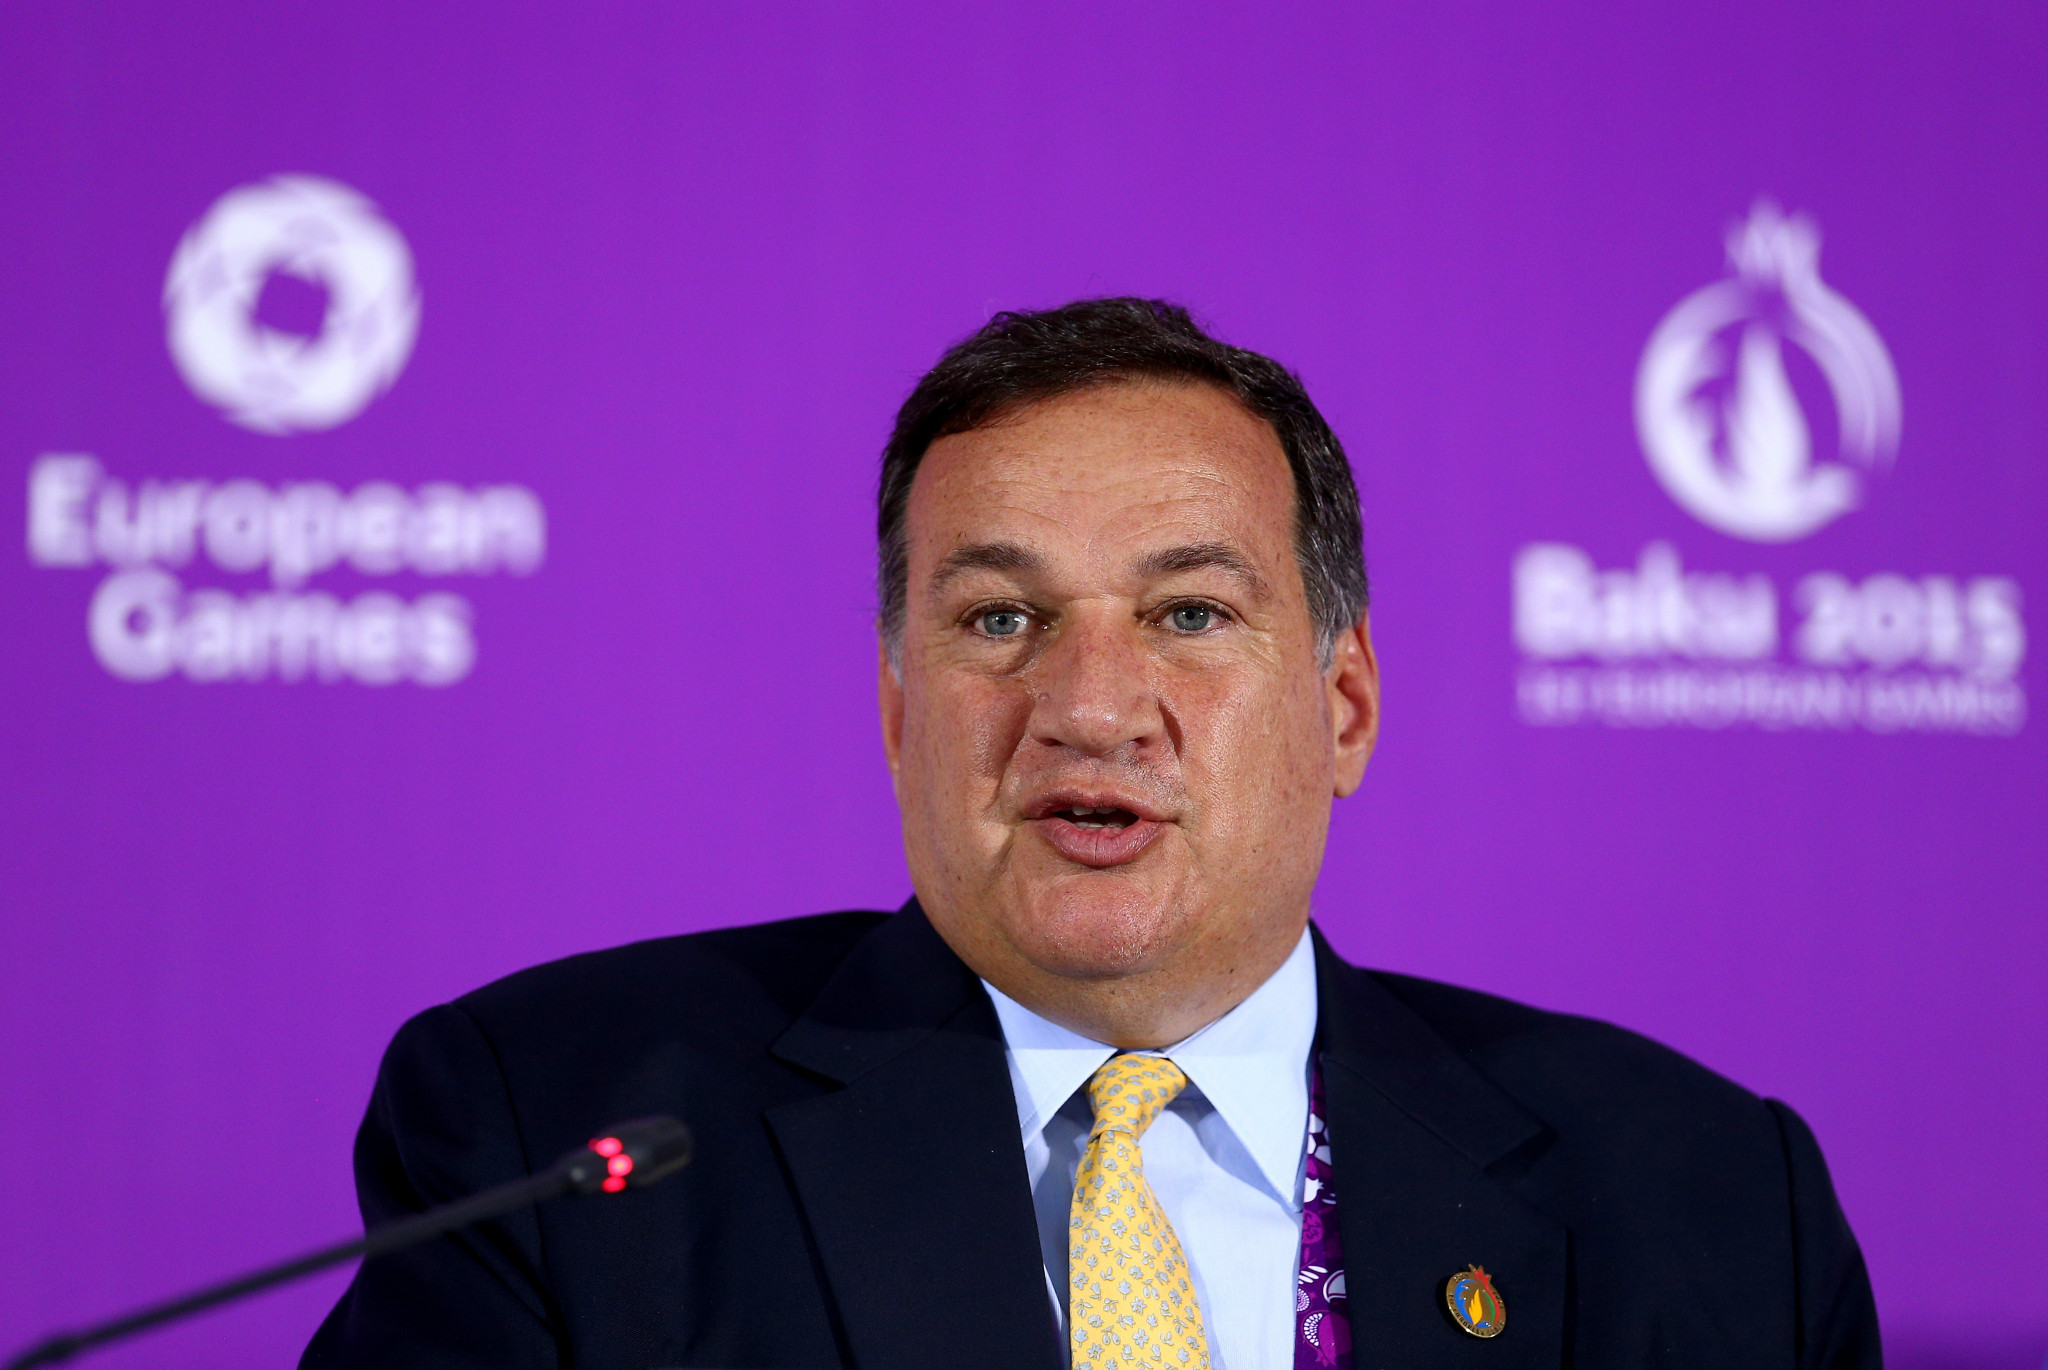 Coordination commission chair Spyros Capralos stated revenue would be split equally between the EOC and Minsk 2019 ©Getty Images